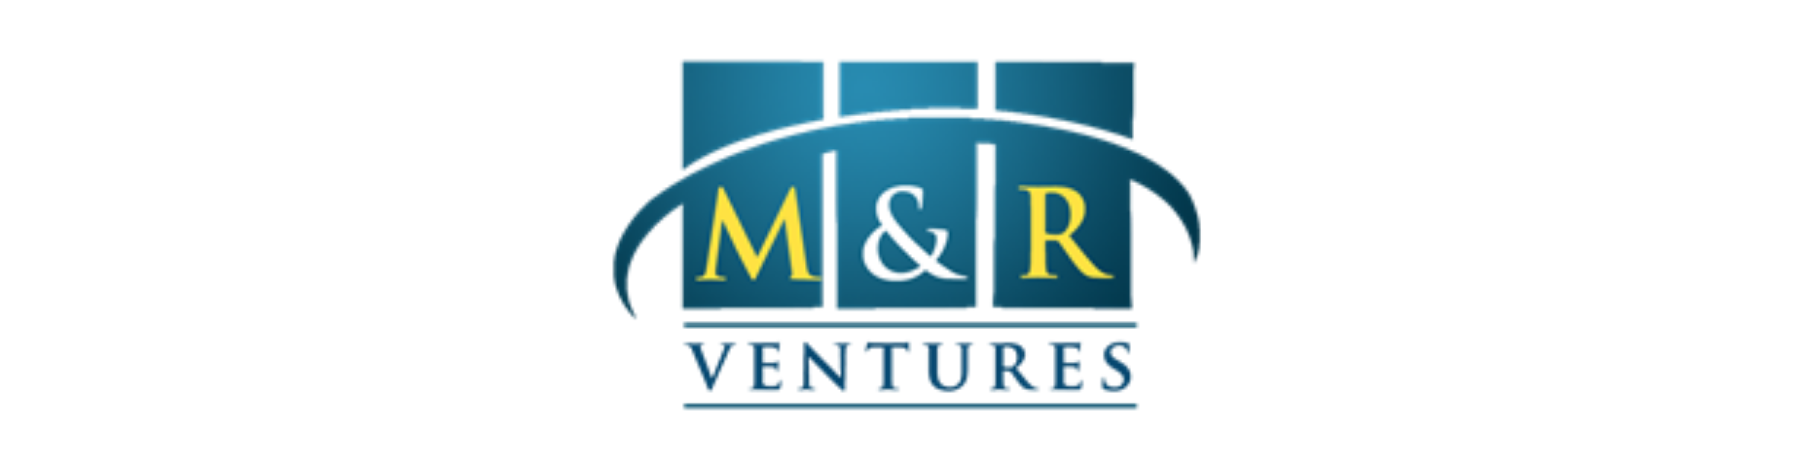 M & R Ventures Ltd - Hair Care & Cosmetics